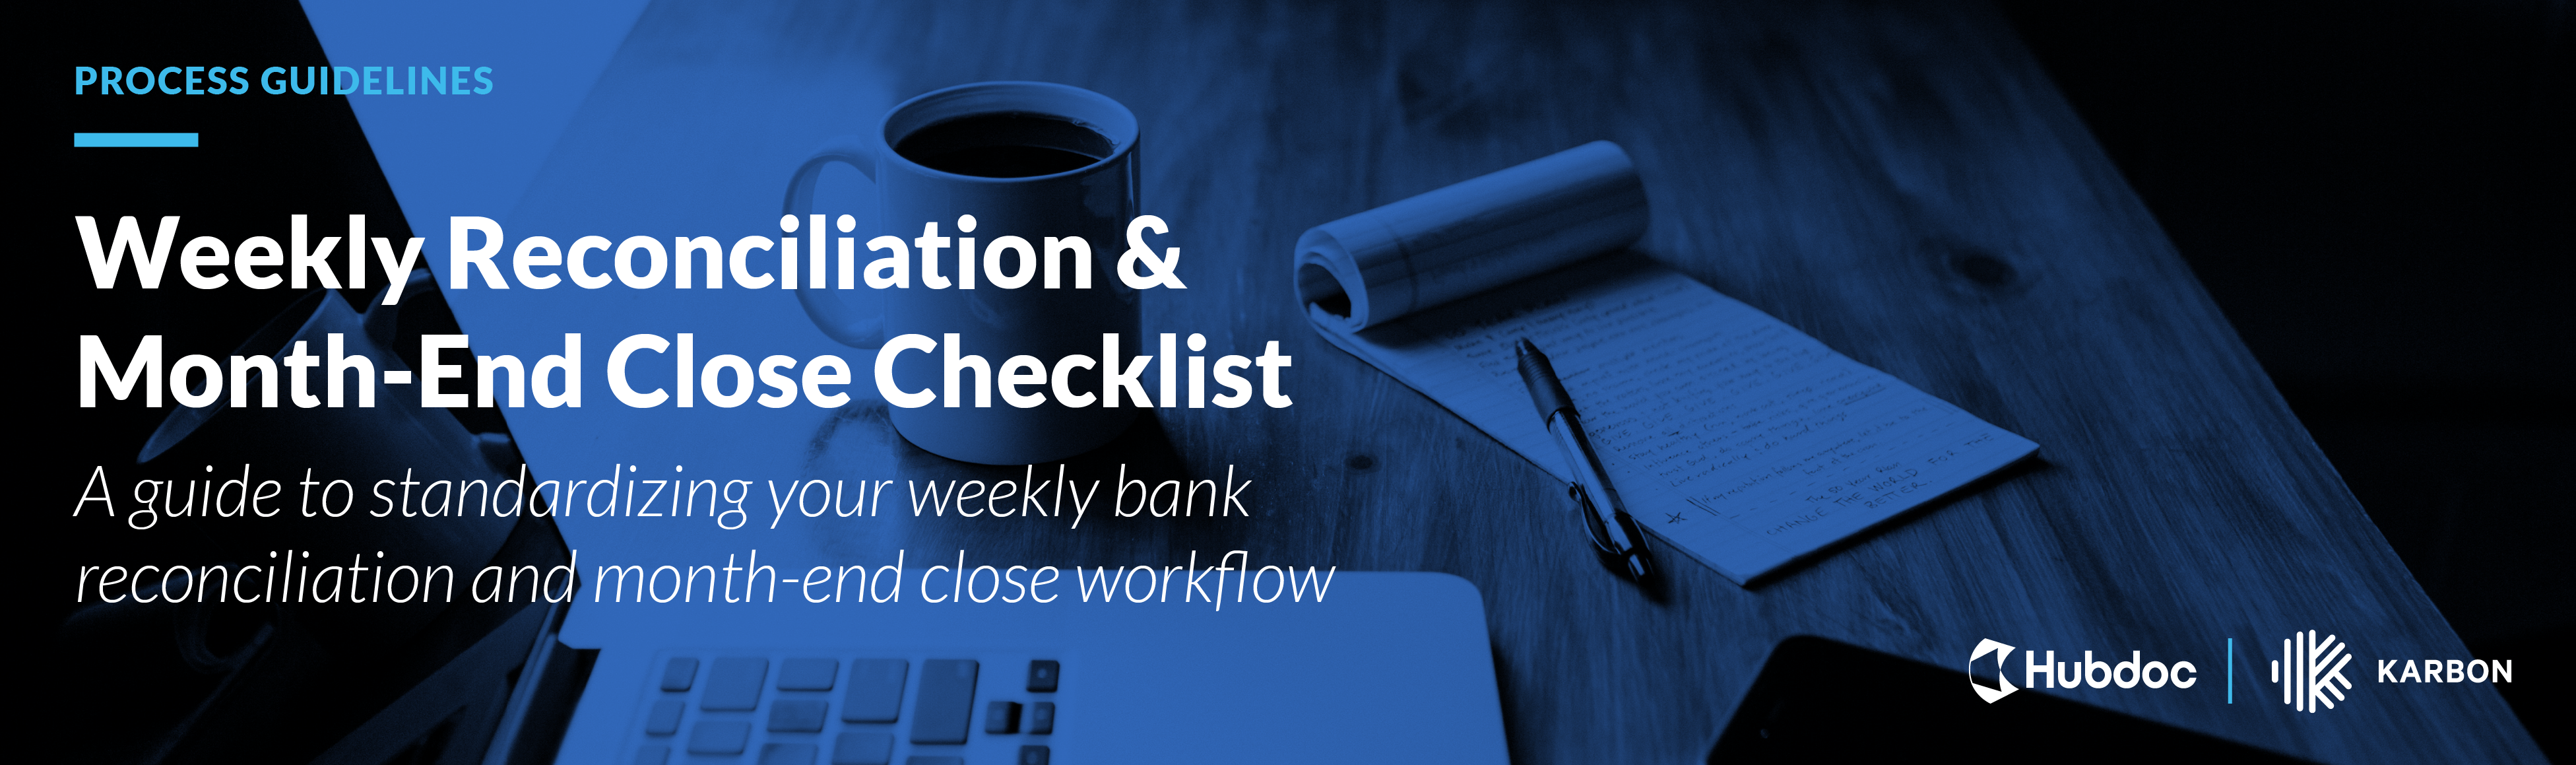 Weekly Reconciliation & Month-End Close Checklist